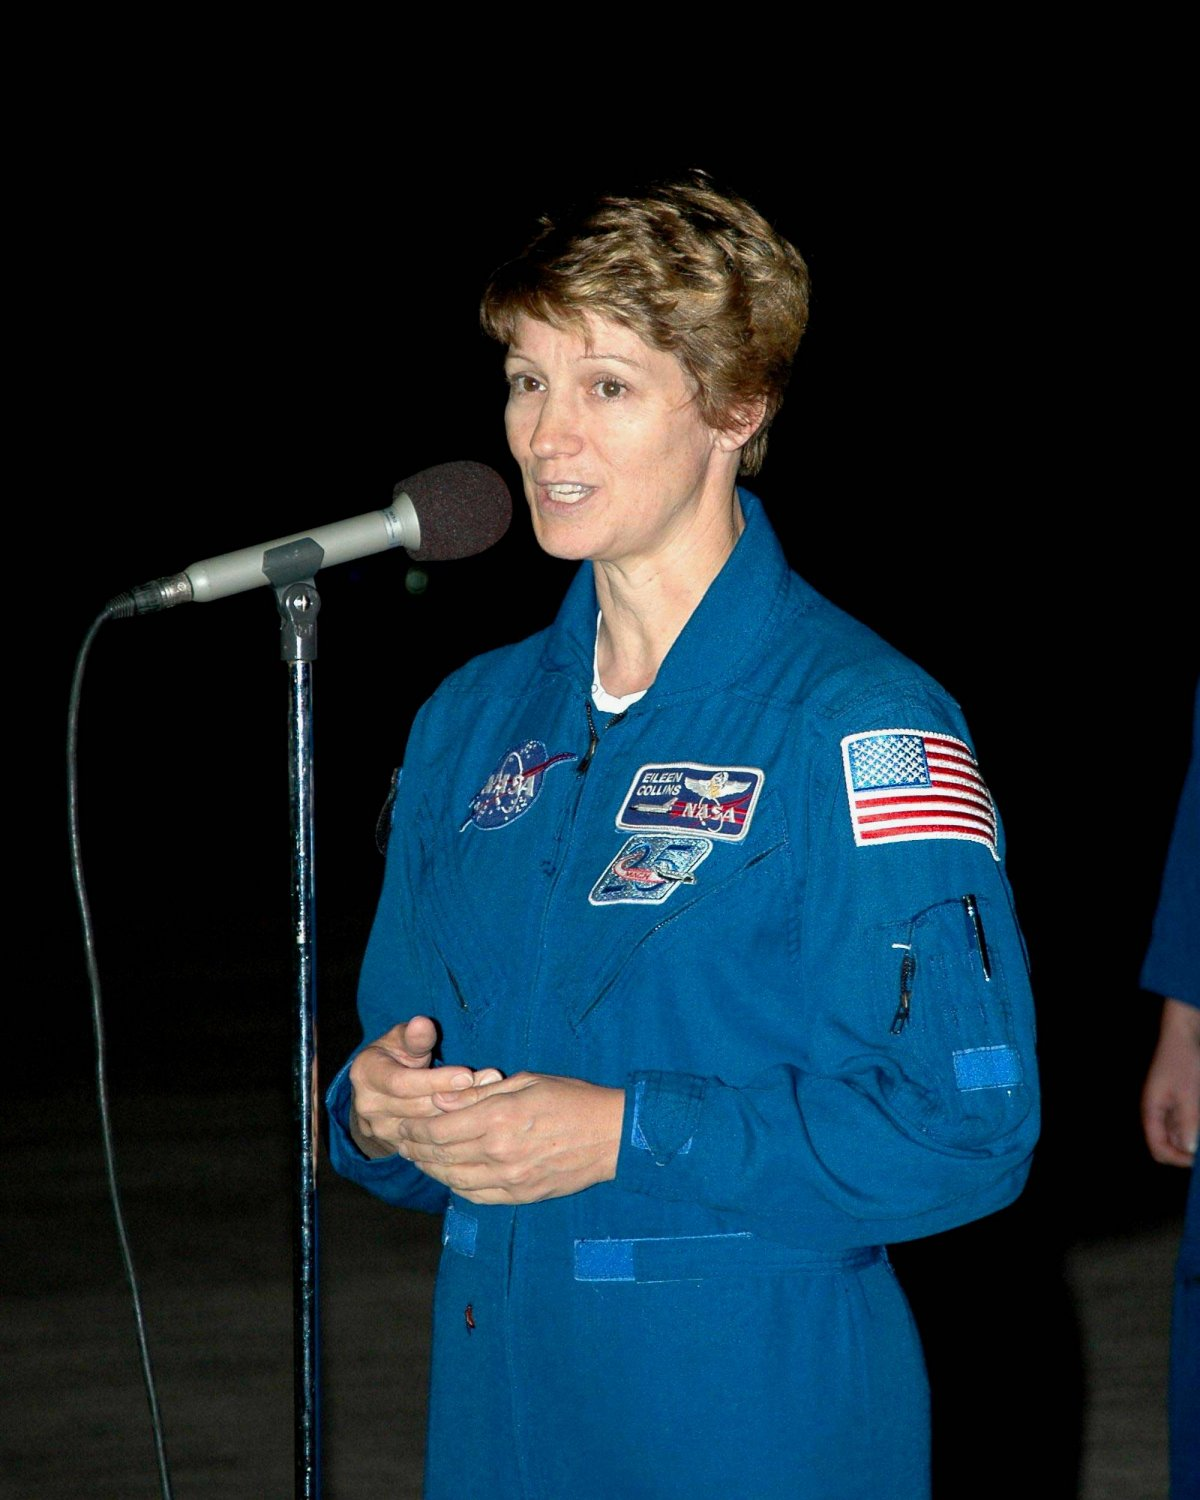 ASTRONAUT EILEEN COLLINS ADDRESSES MEDIA AFTER STS-114 8X10 NASA PHOTO (NN-135)